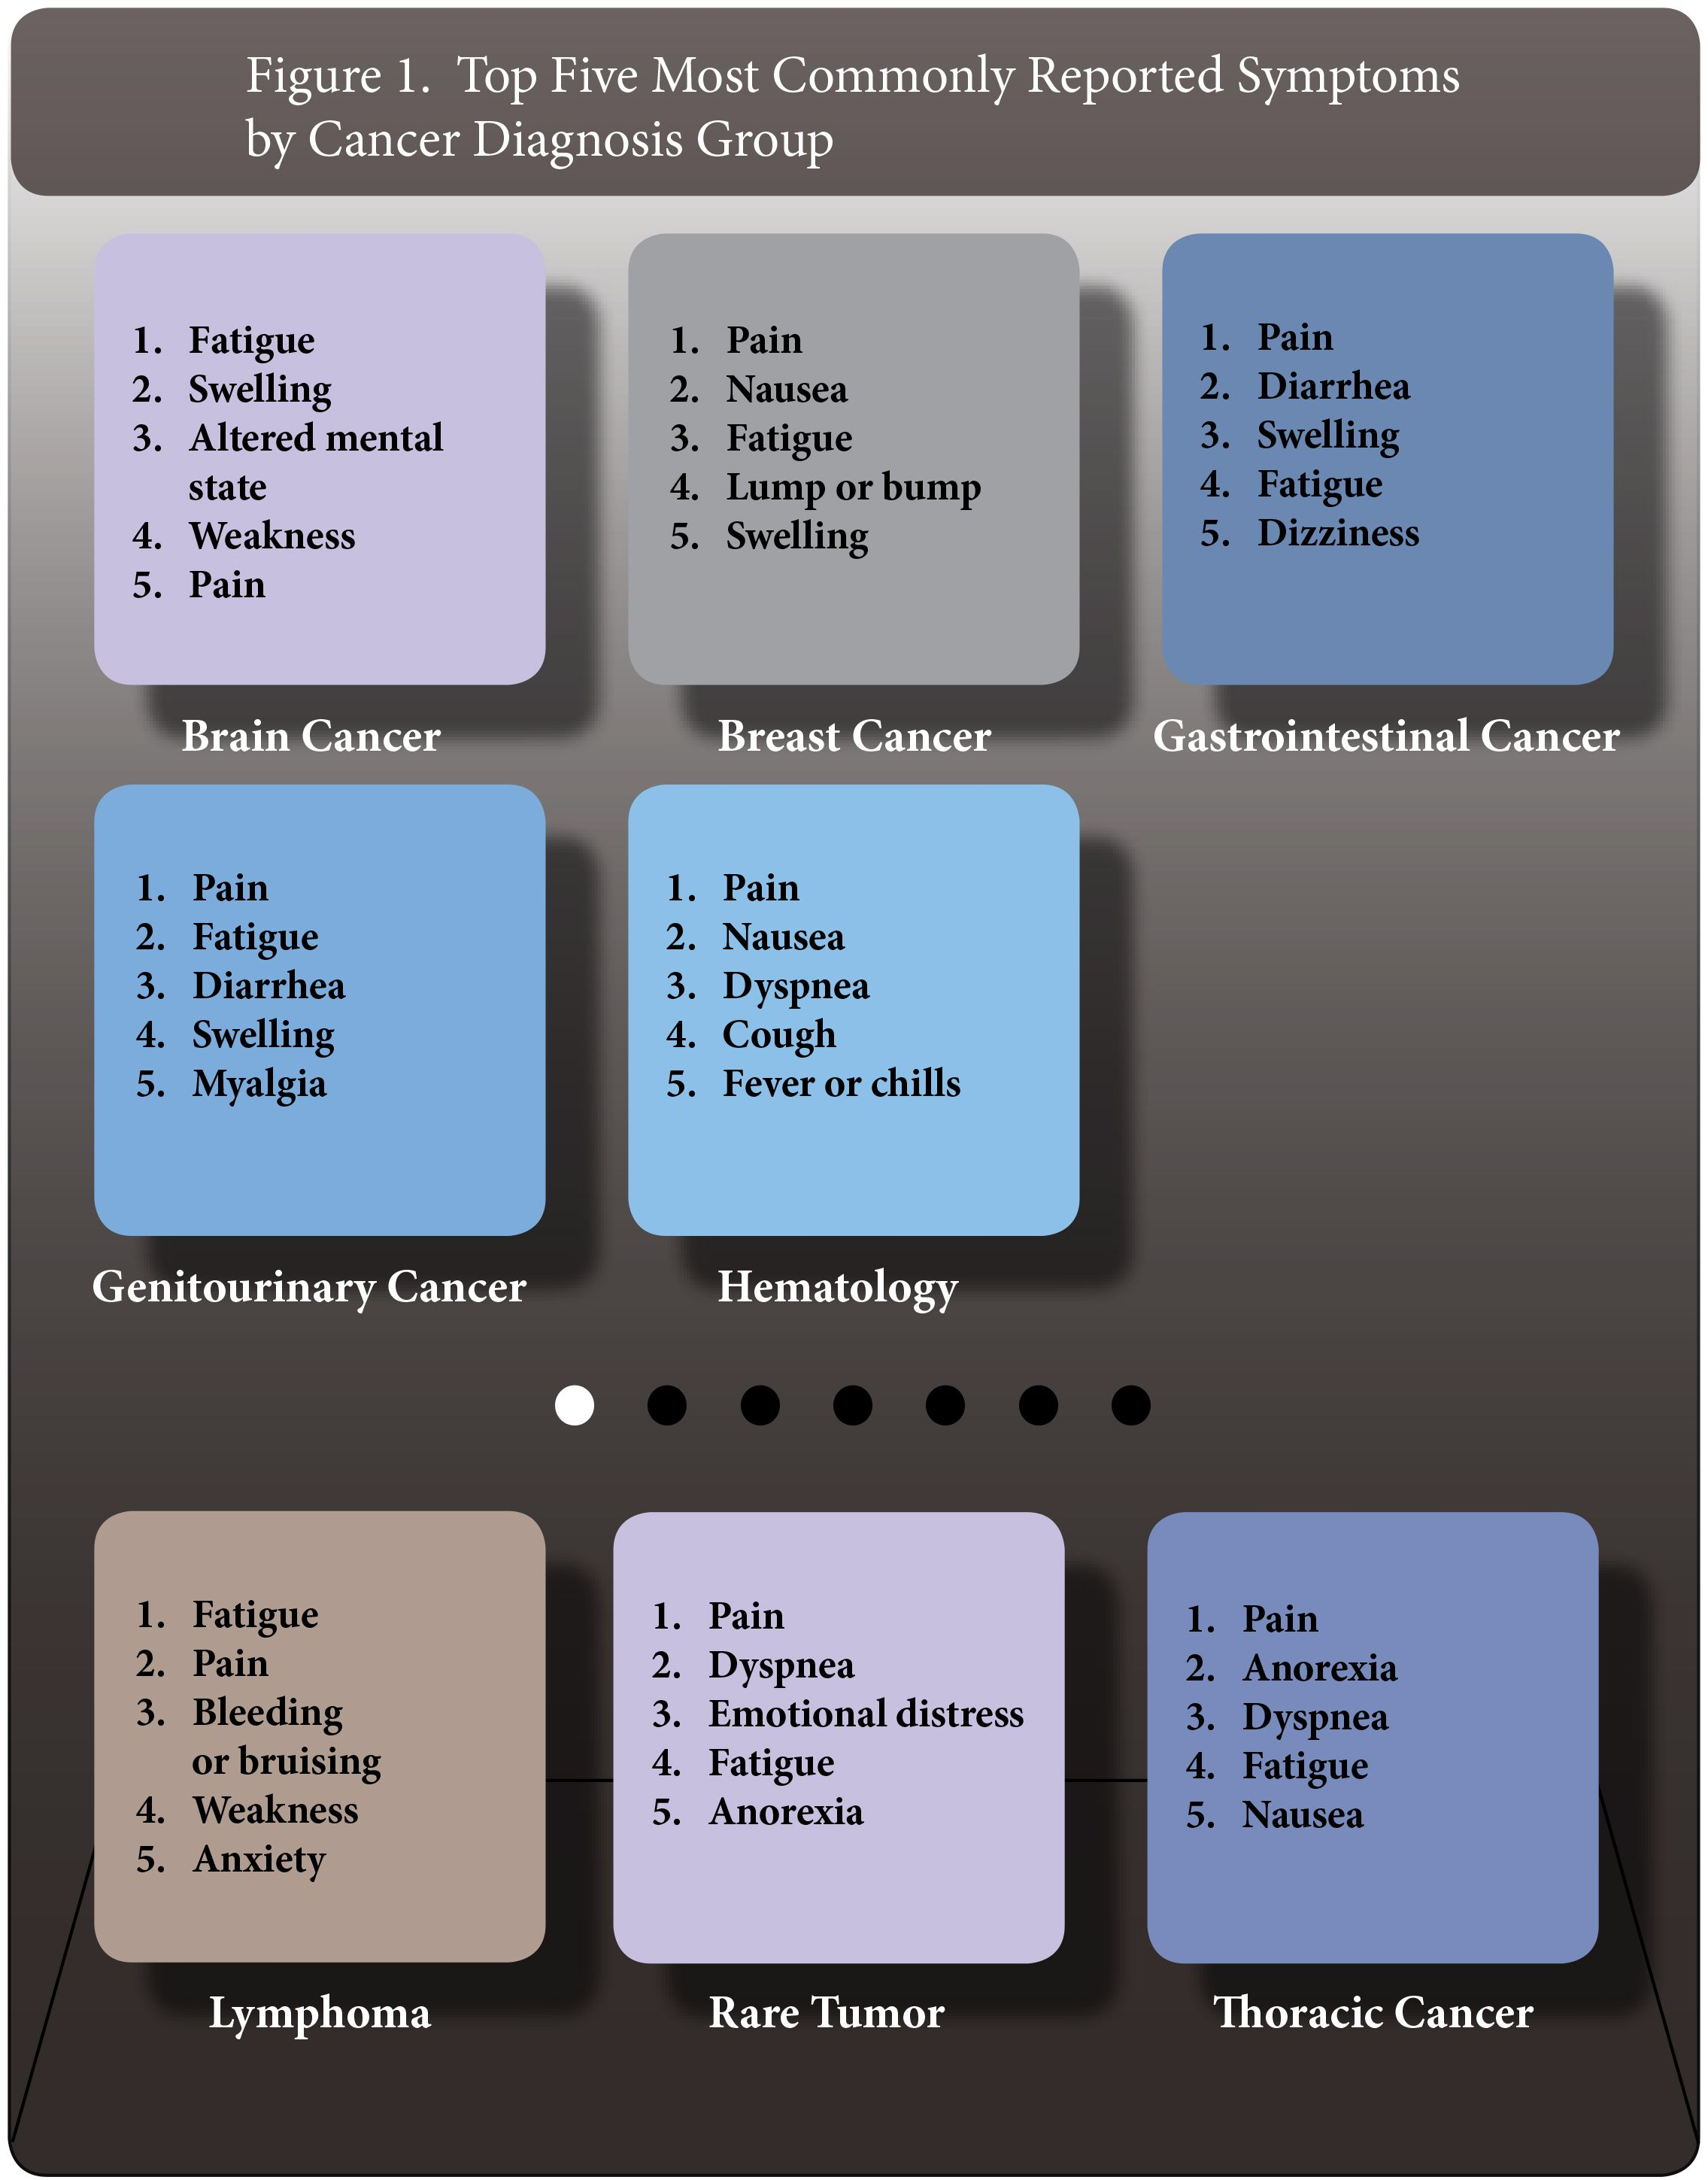 Oncology nursing heres your cheat sheet for the most commonly oncology nursing heres your cheat sheet for the most commonly reported symptoms per cancer 1betcityfo Choice Image